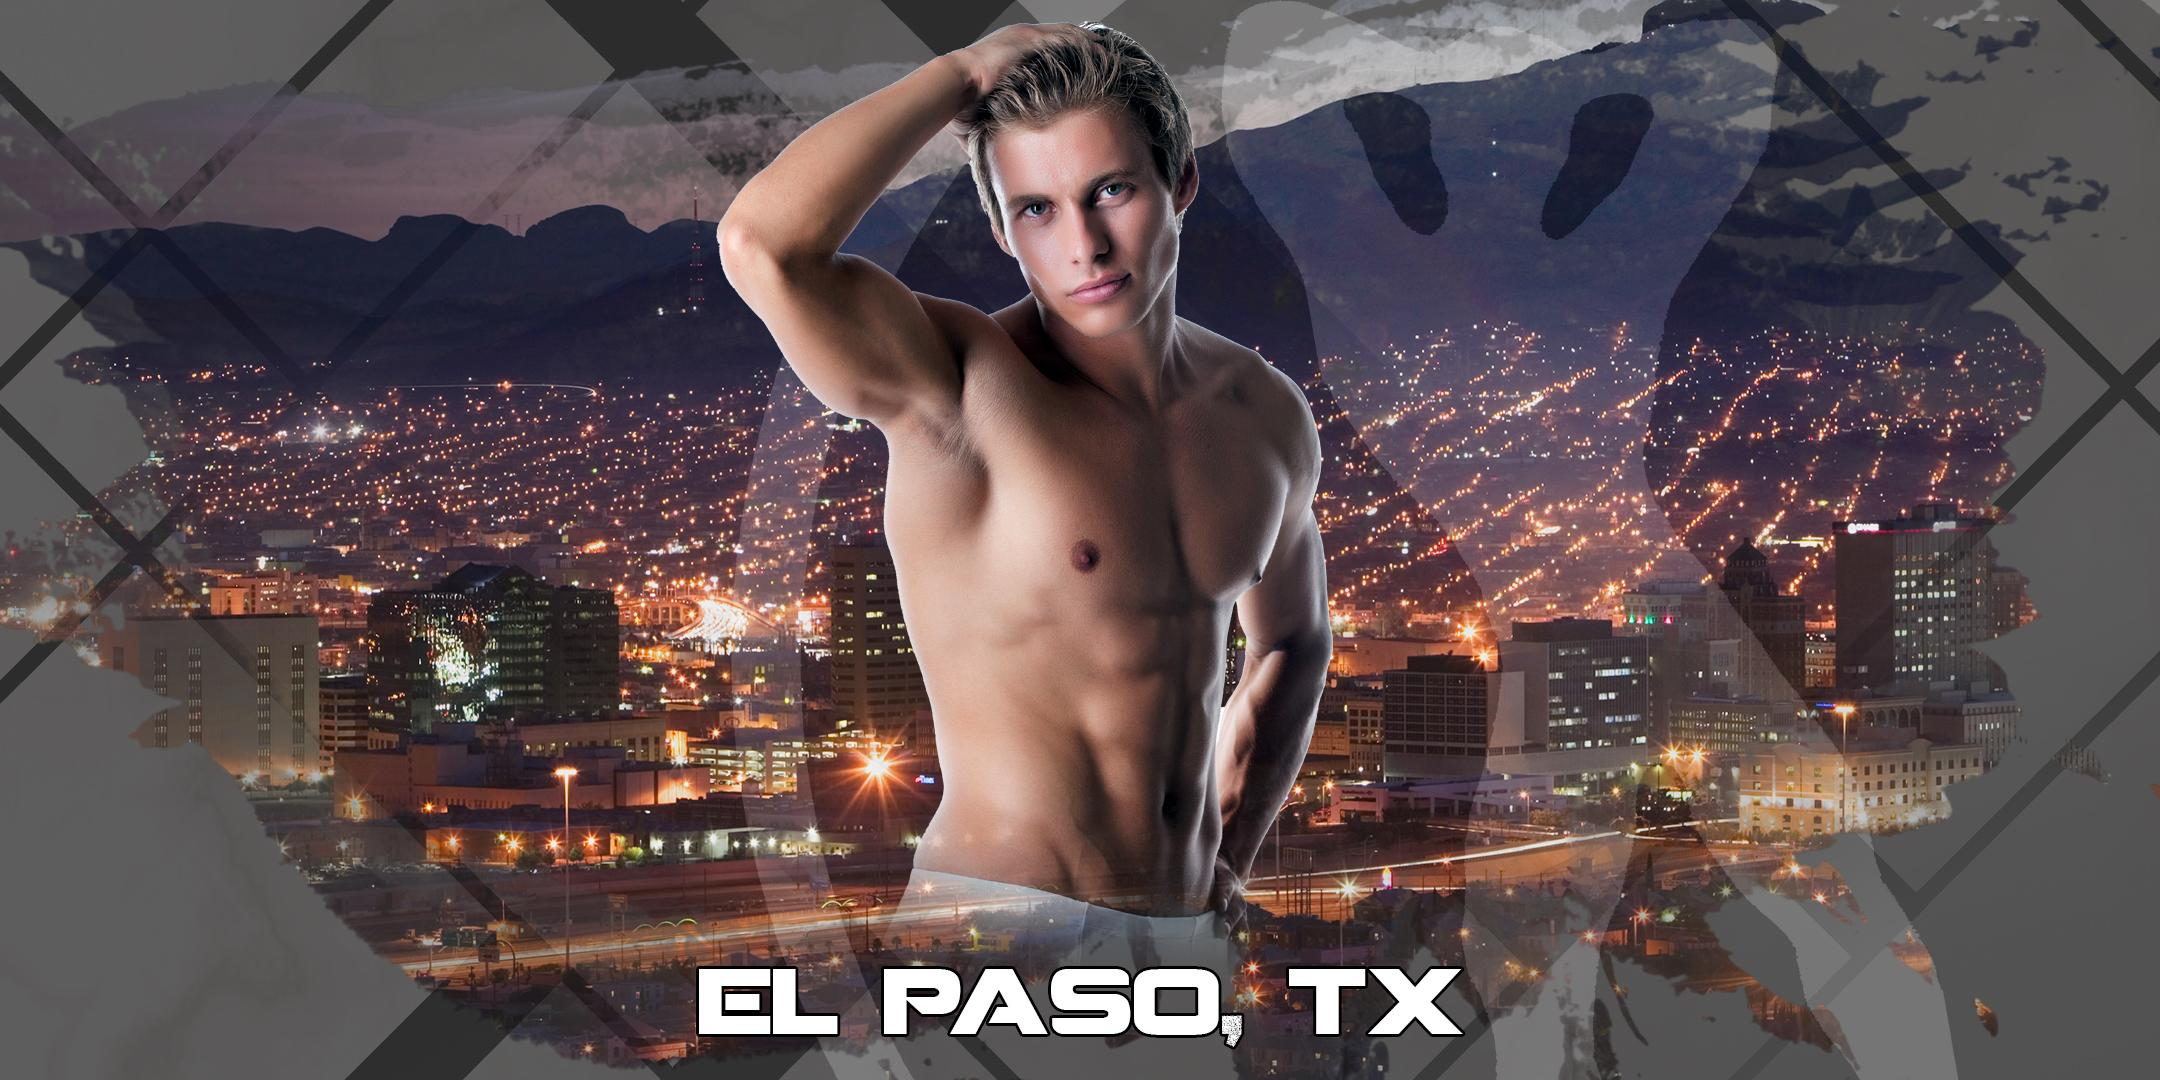 BuffBoyzz Gay Friendly Male Strip Clubs & Male Strippers El Paso, TX 8-10 PM